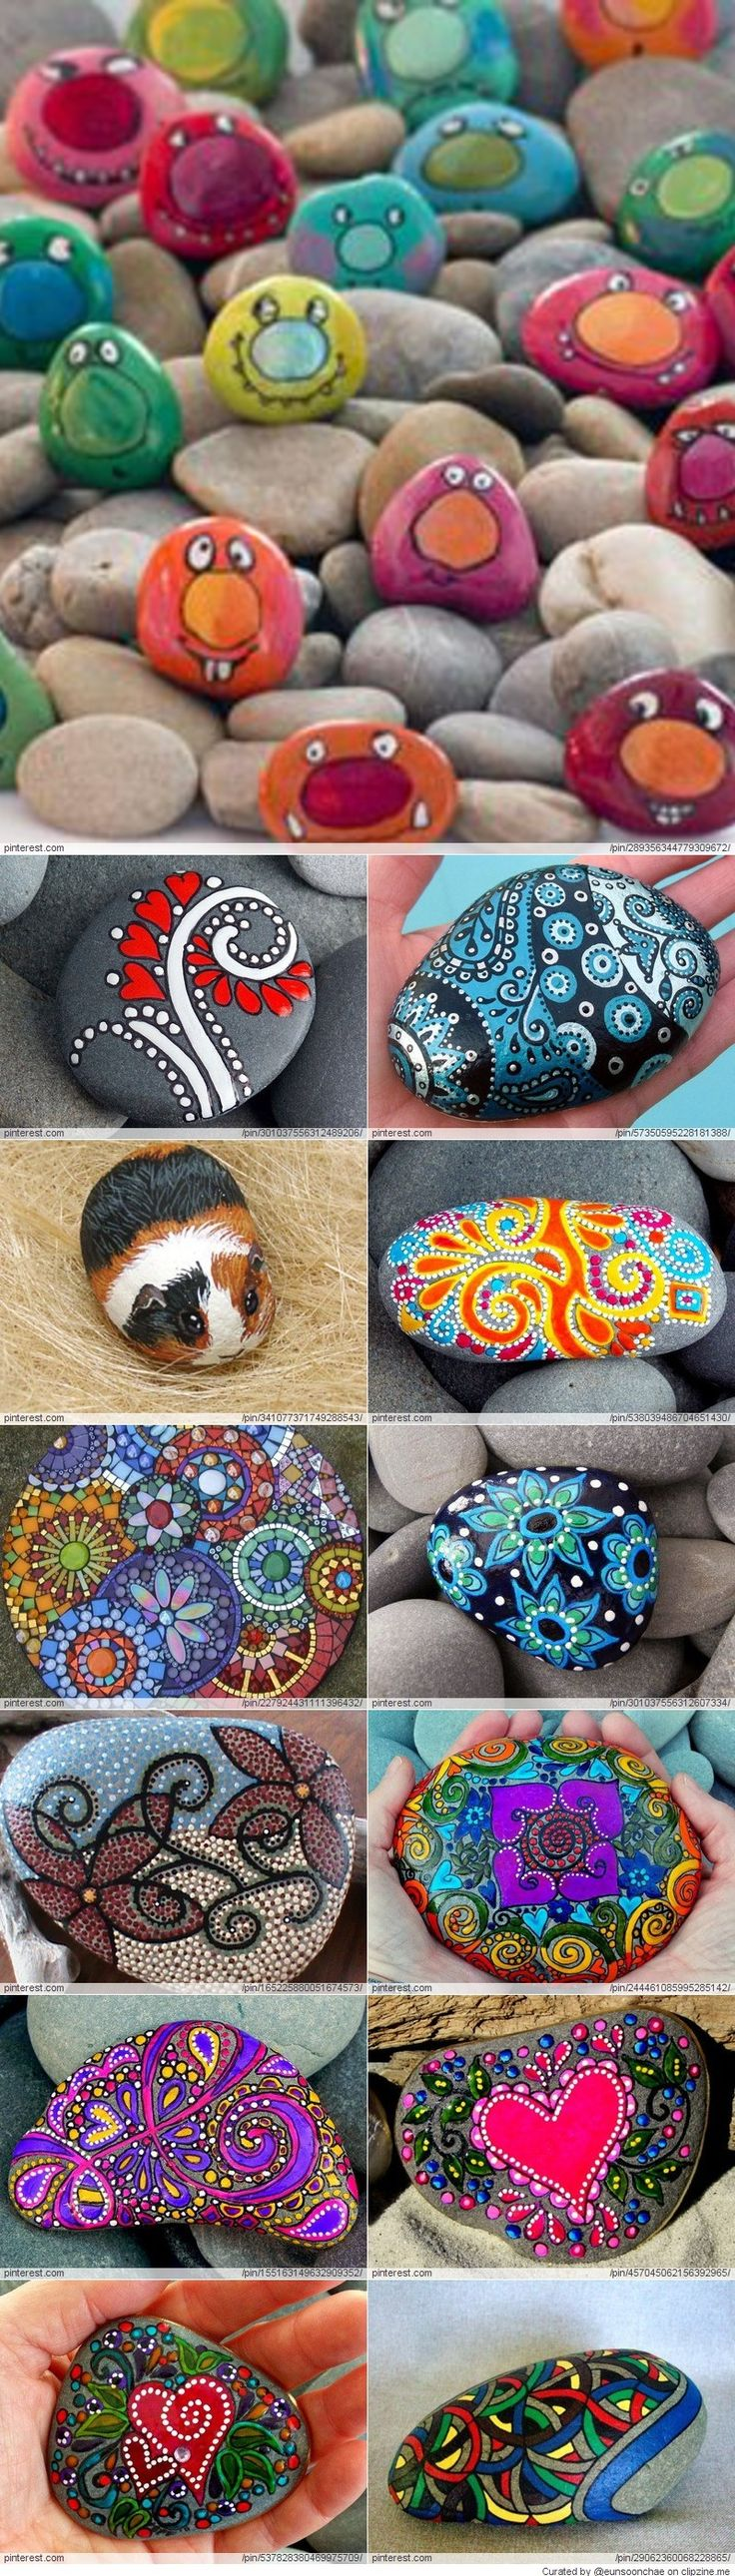 Great Idea for Stone Art Love the little faces!